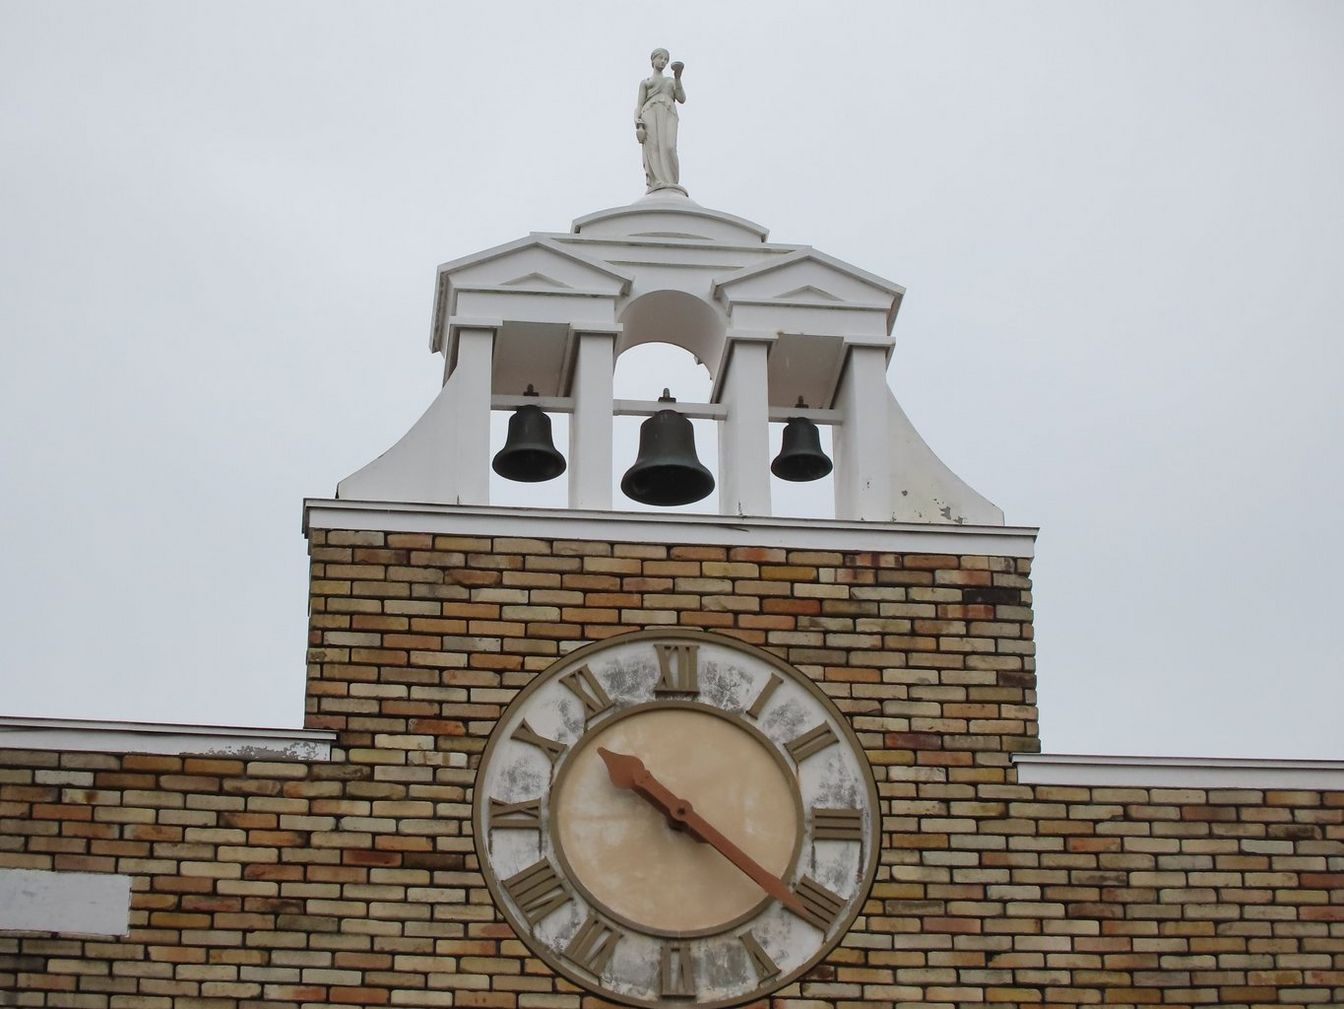 Canon PowerShot ZOOM sample image of a town hall clock tower shot at 100mm focal length